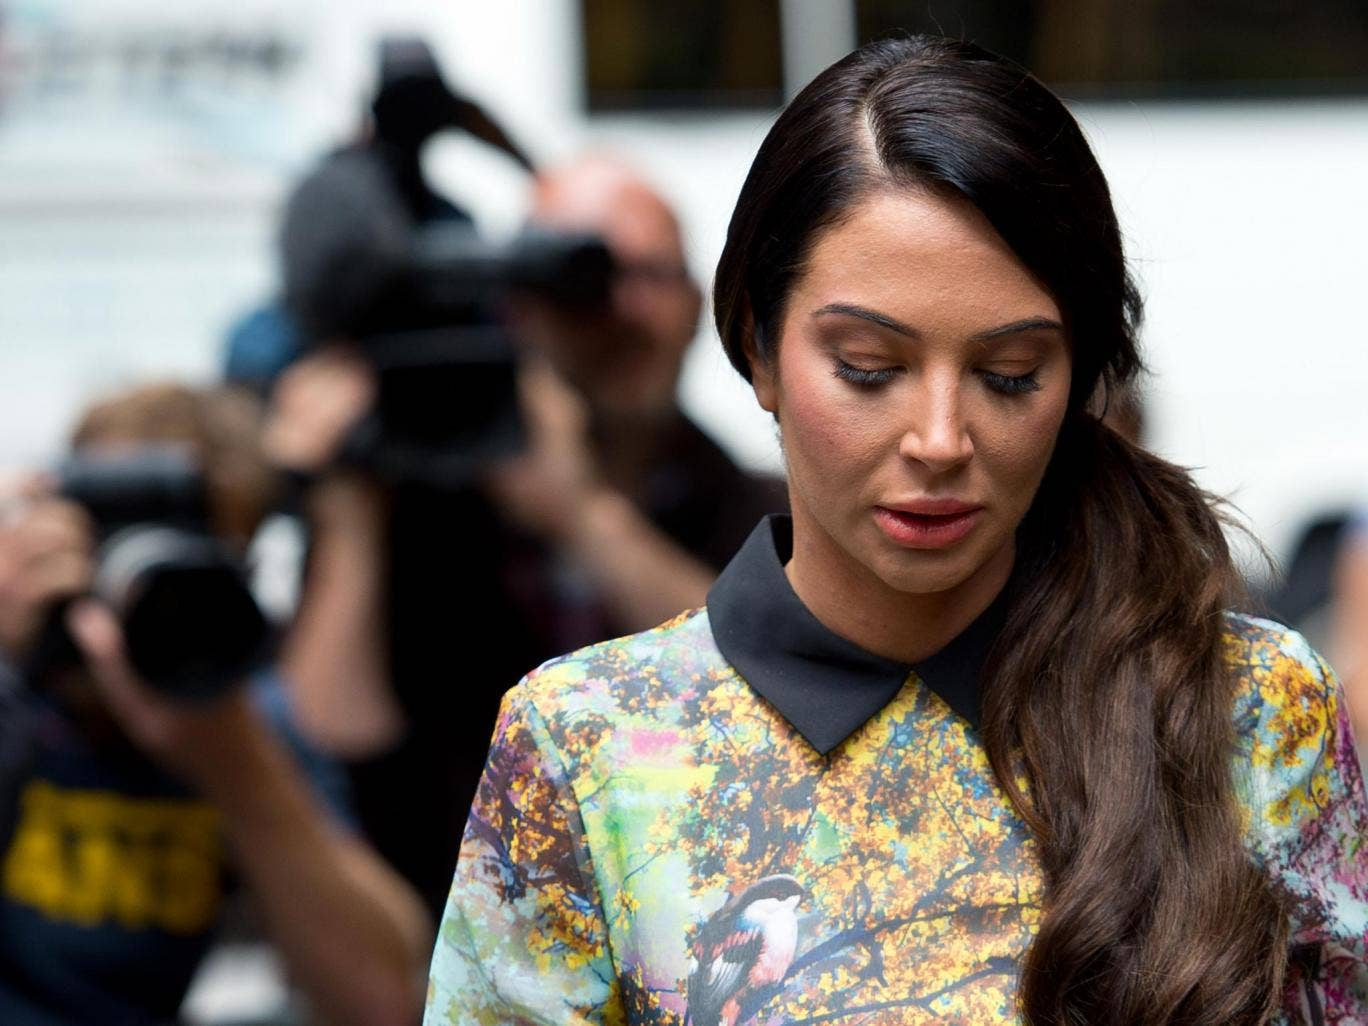 Tulisa Contostavlos arrives to face drug charges at Southwark Crown